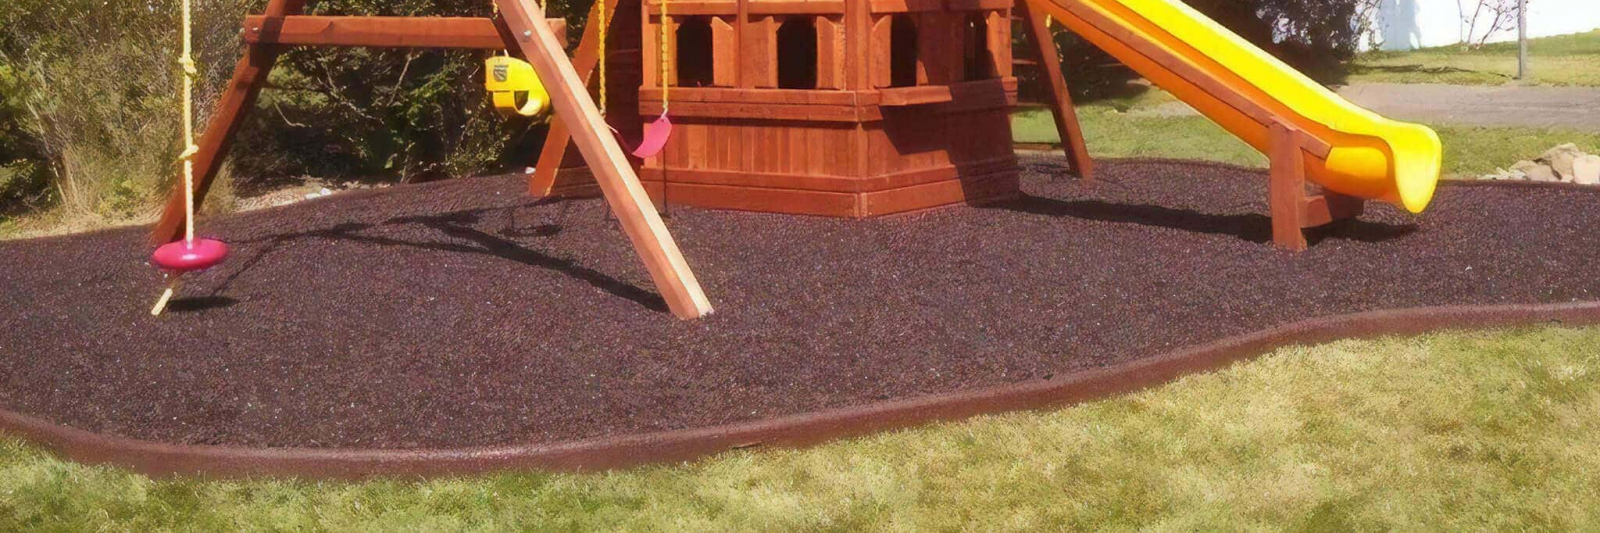 Rubber mulch under swing set